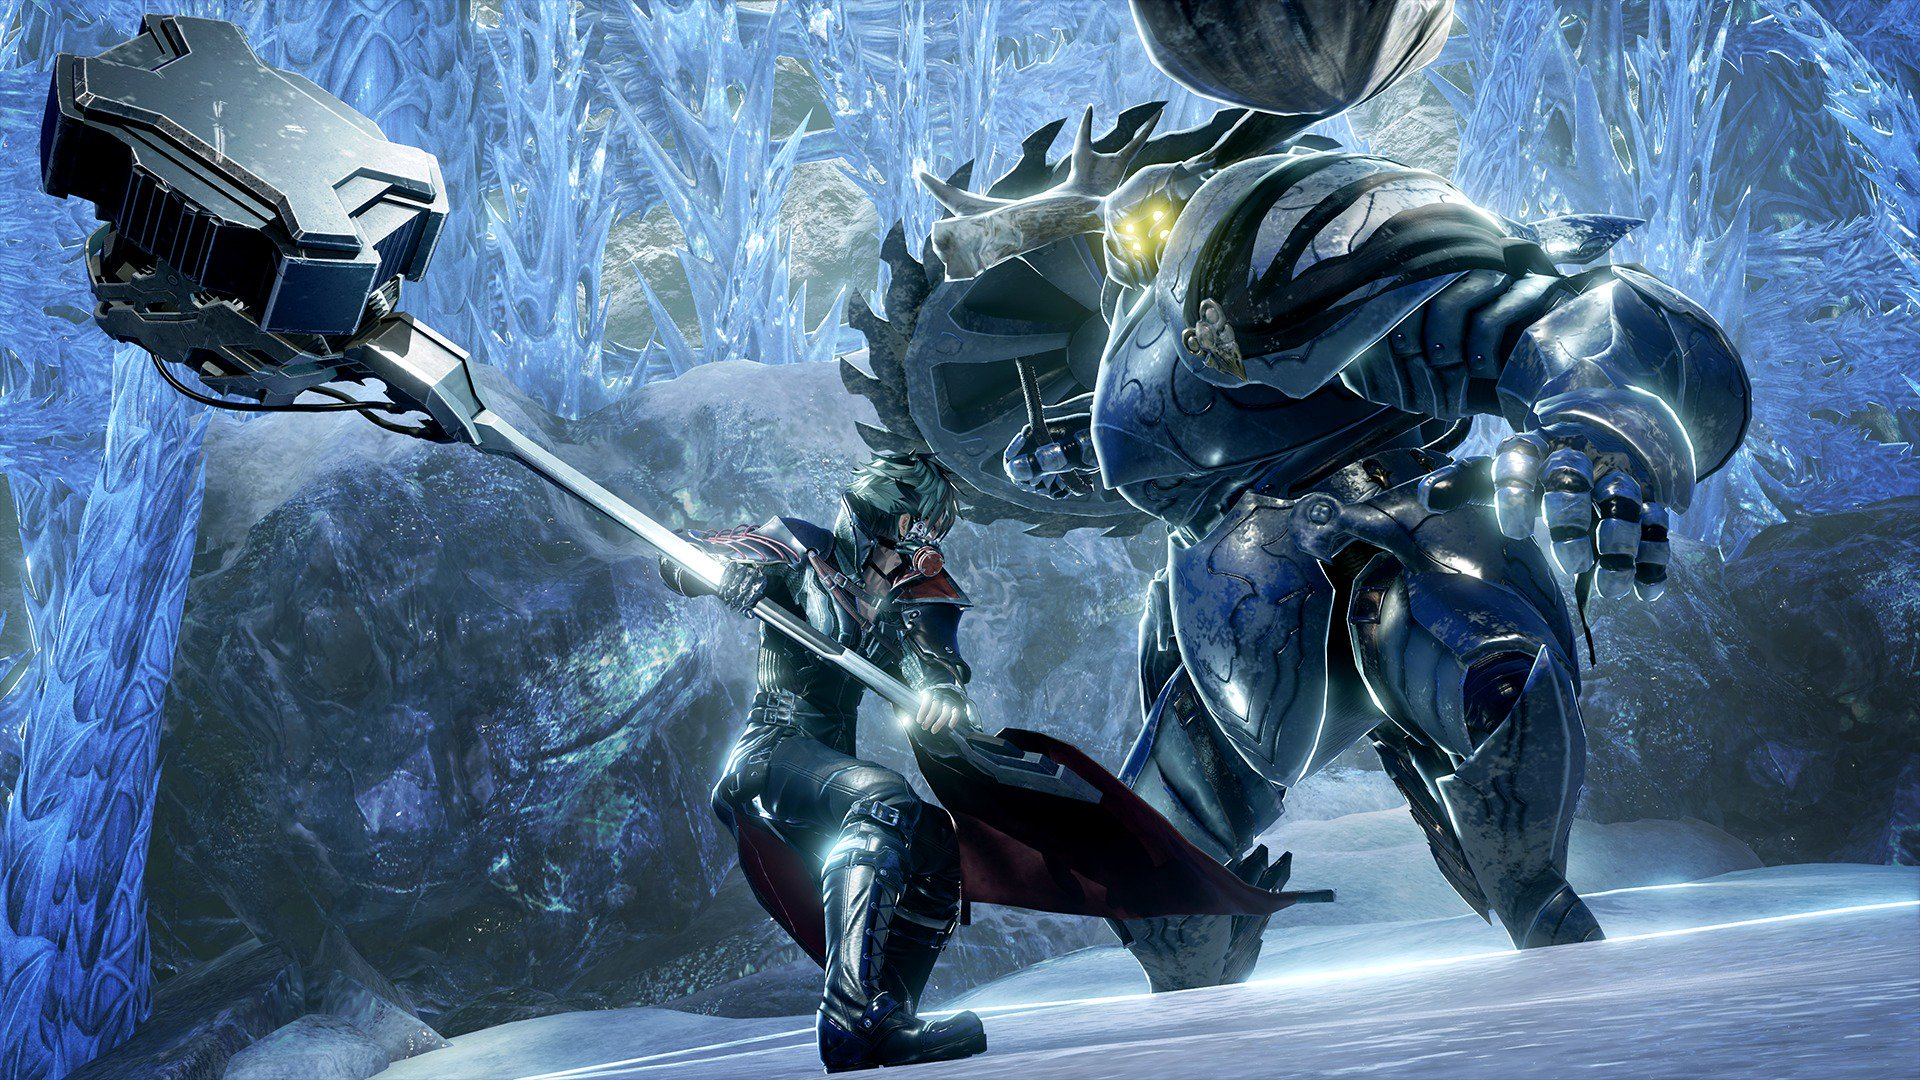 Bandai Namco Delays Code Vein, Now Scheduled to Release in 2019